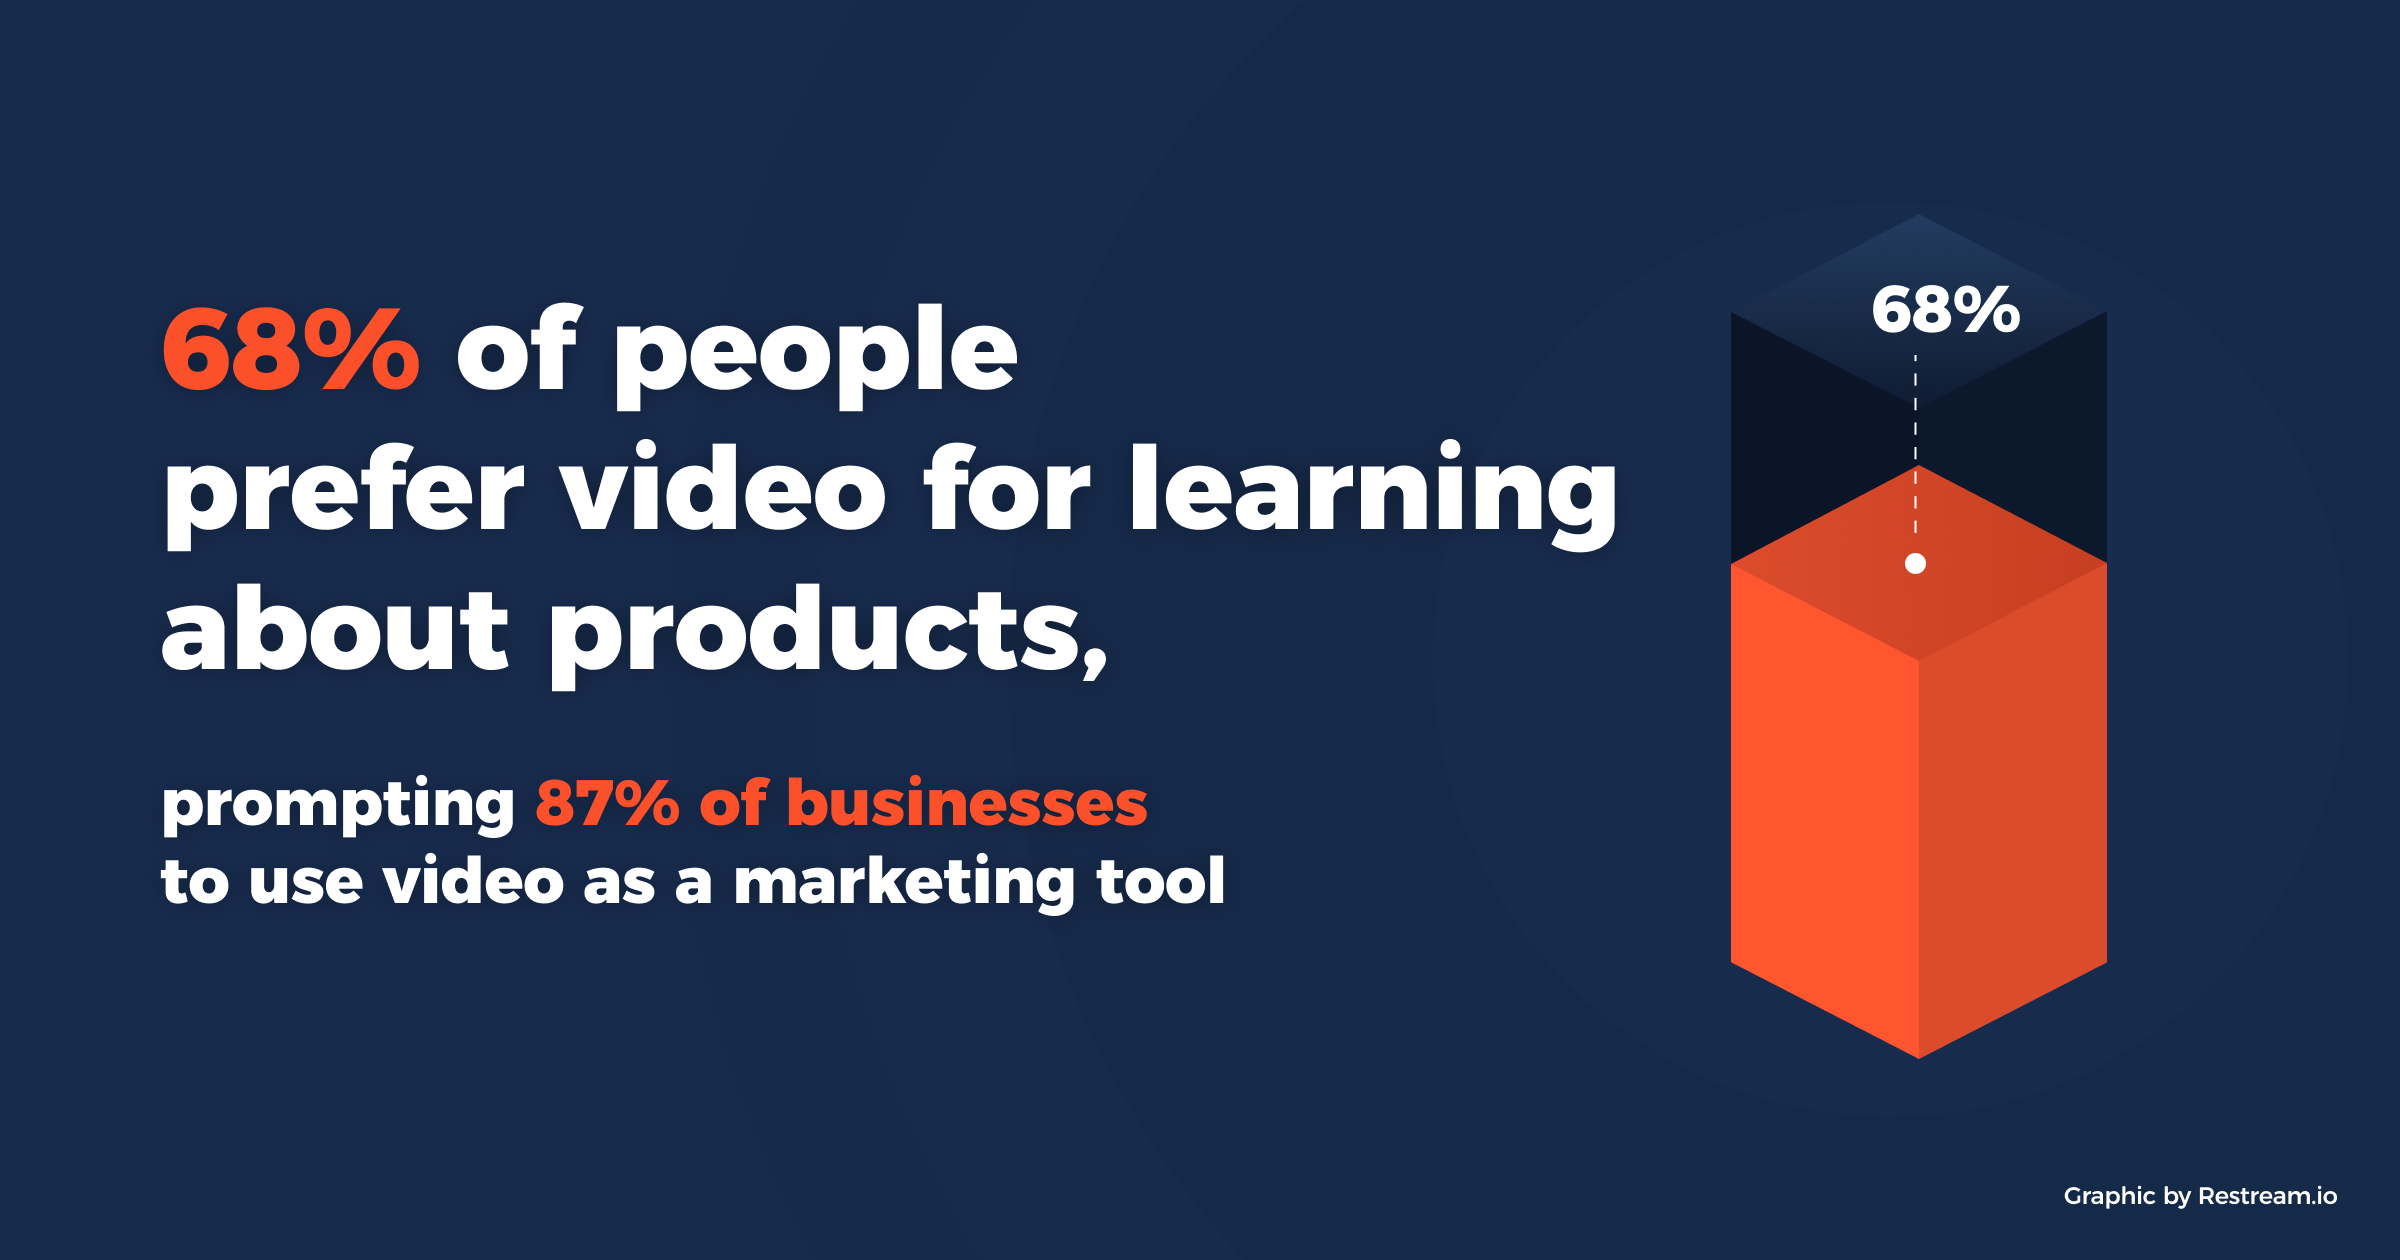 68% prefers video for learning about products